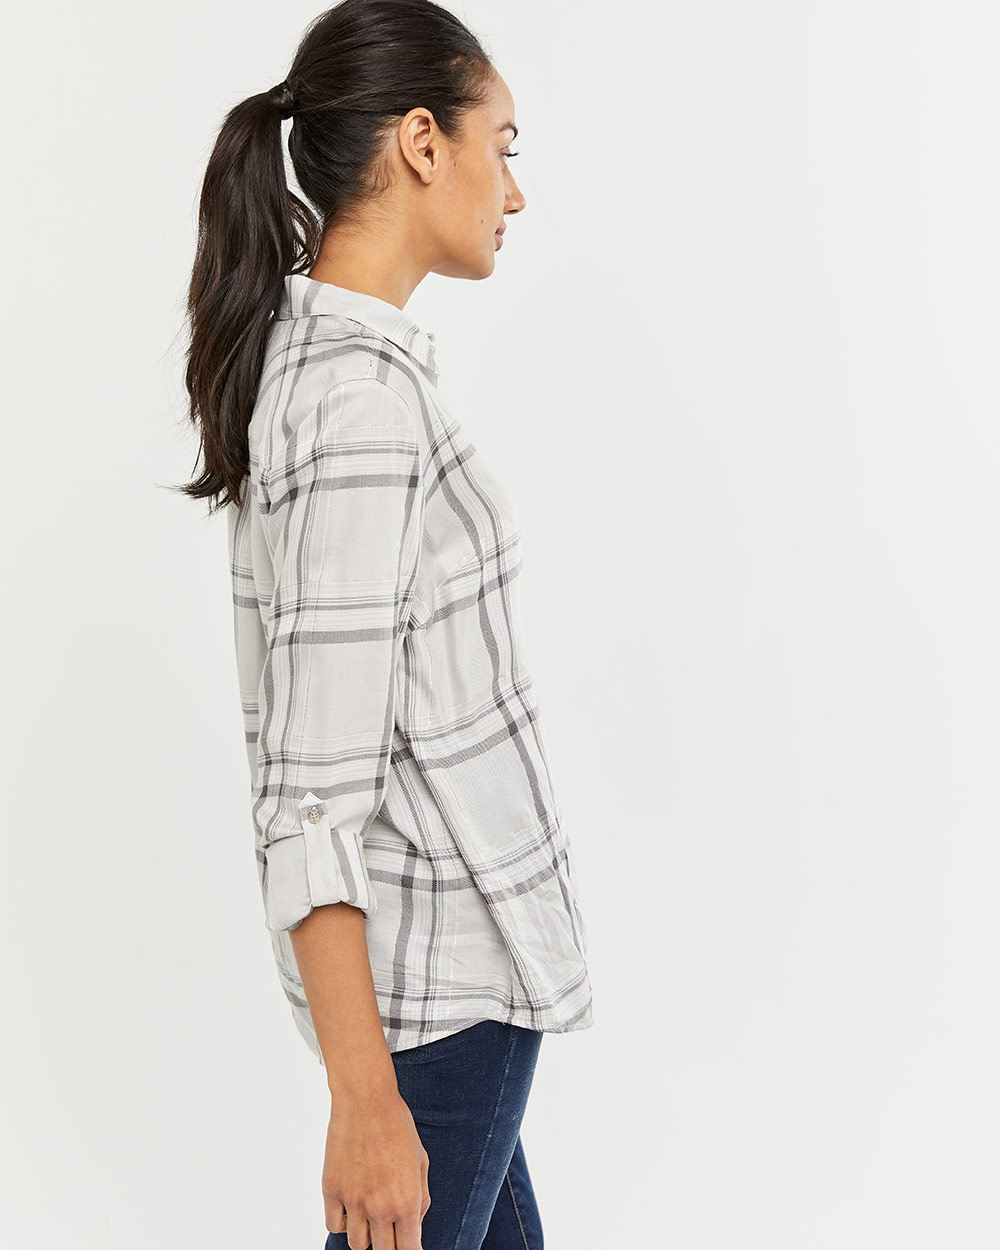 Plaid Shirt with Pocket and Metallic Thread